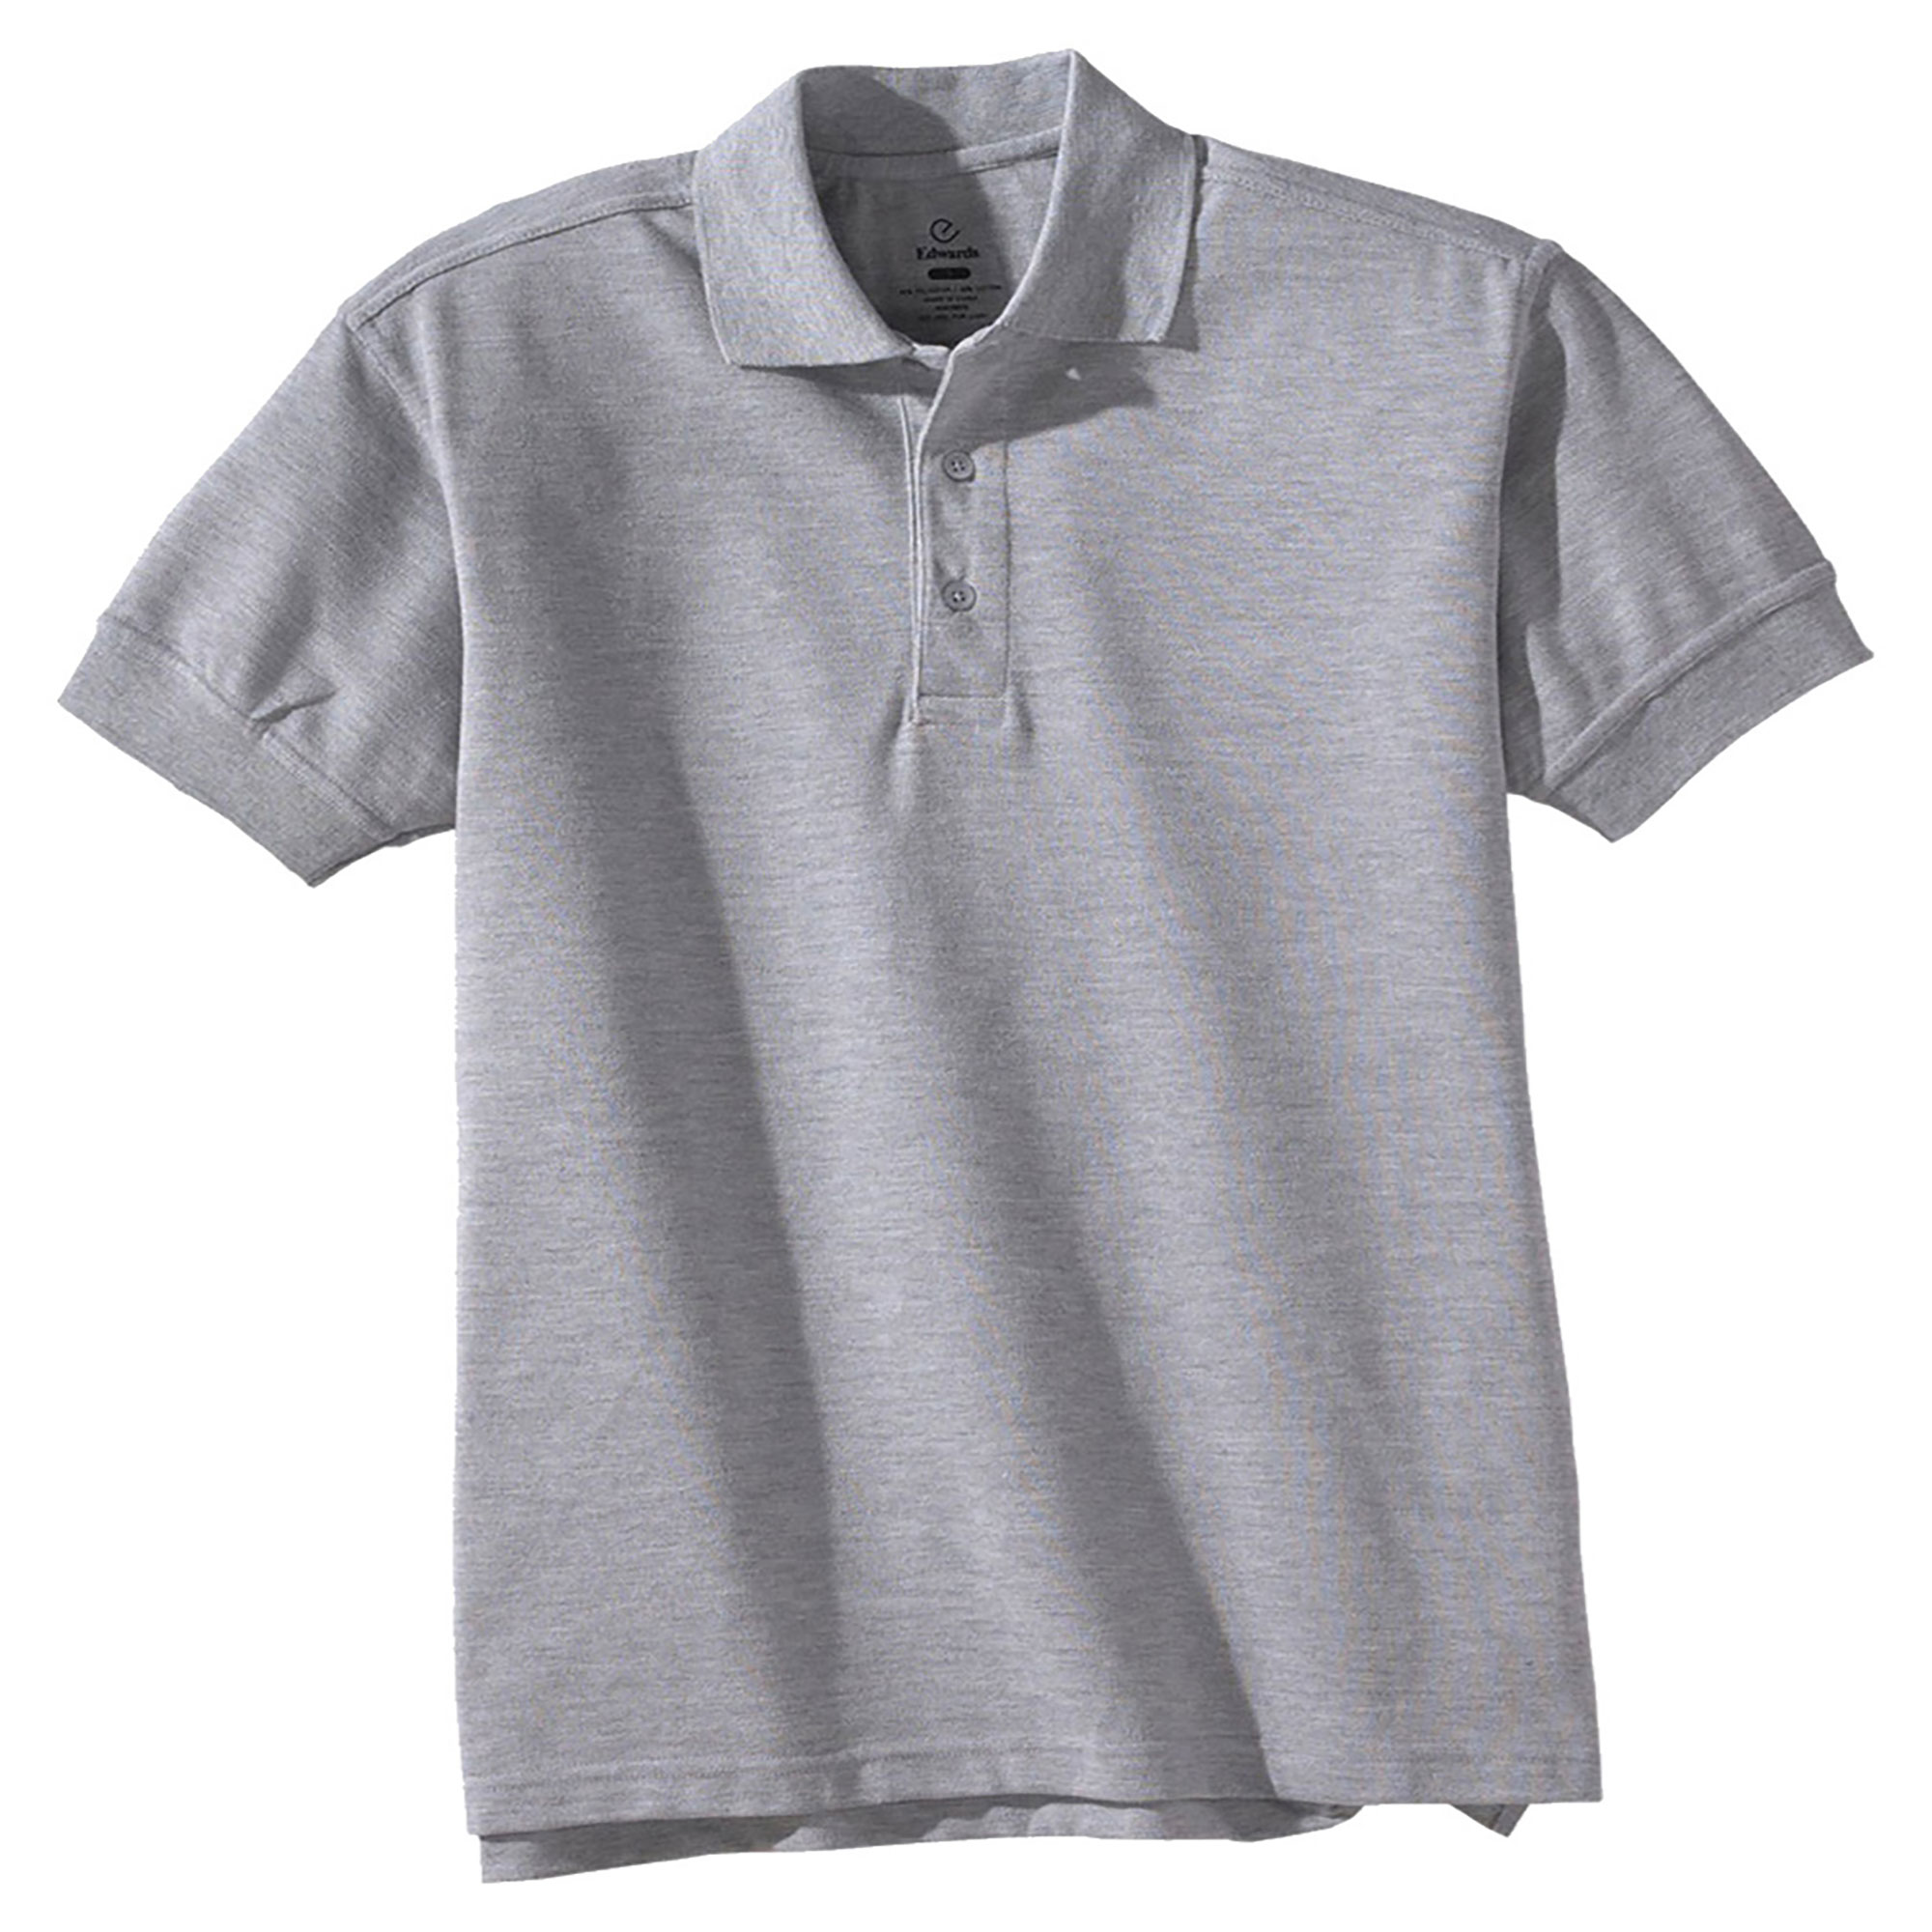 Edwards Men's Big And Tall Soft  Pique Polo Shirt, Style 1500